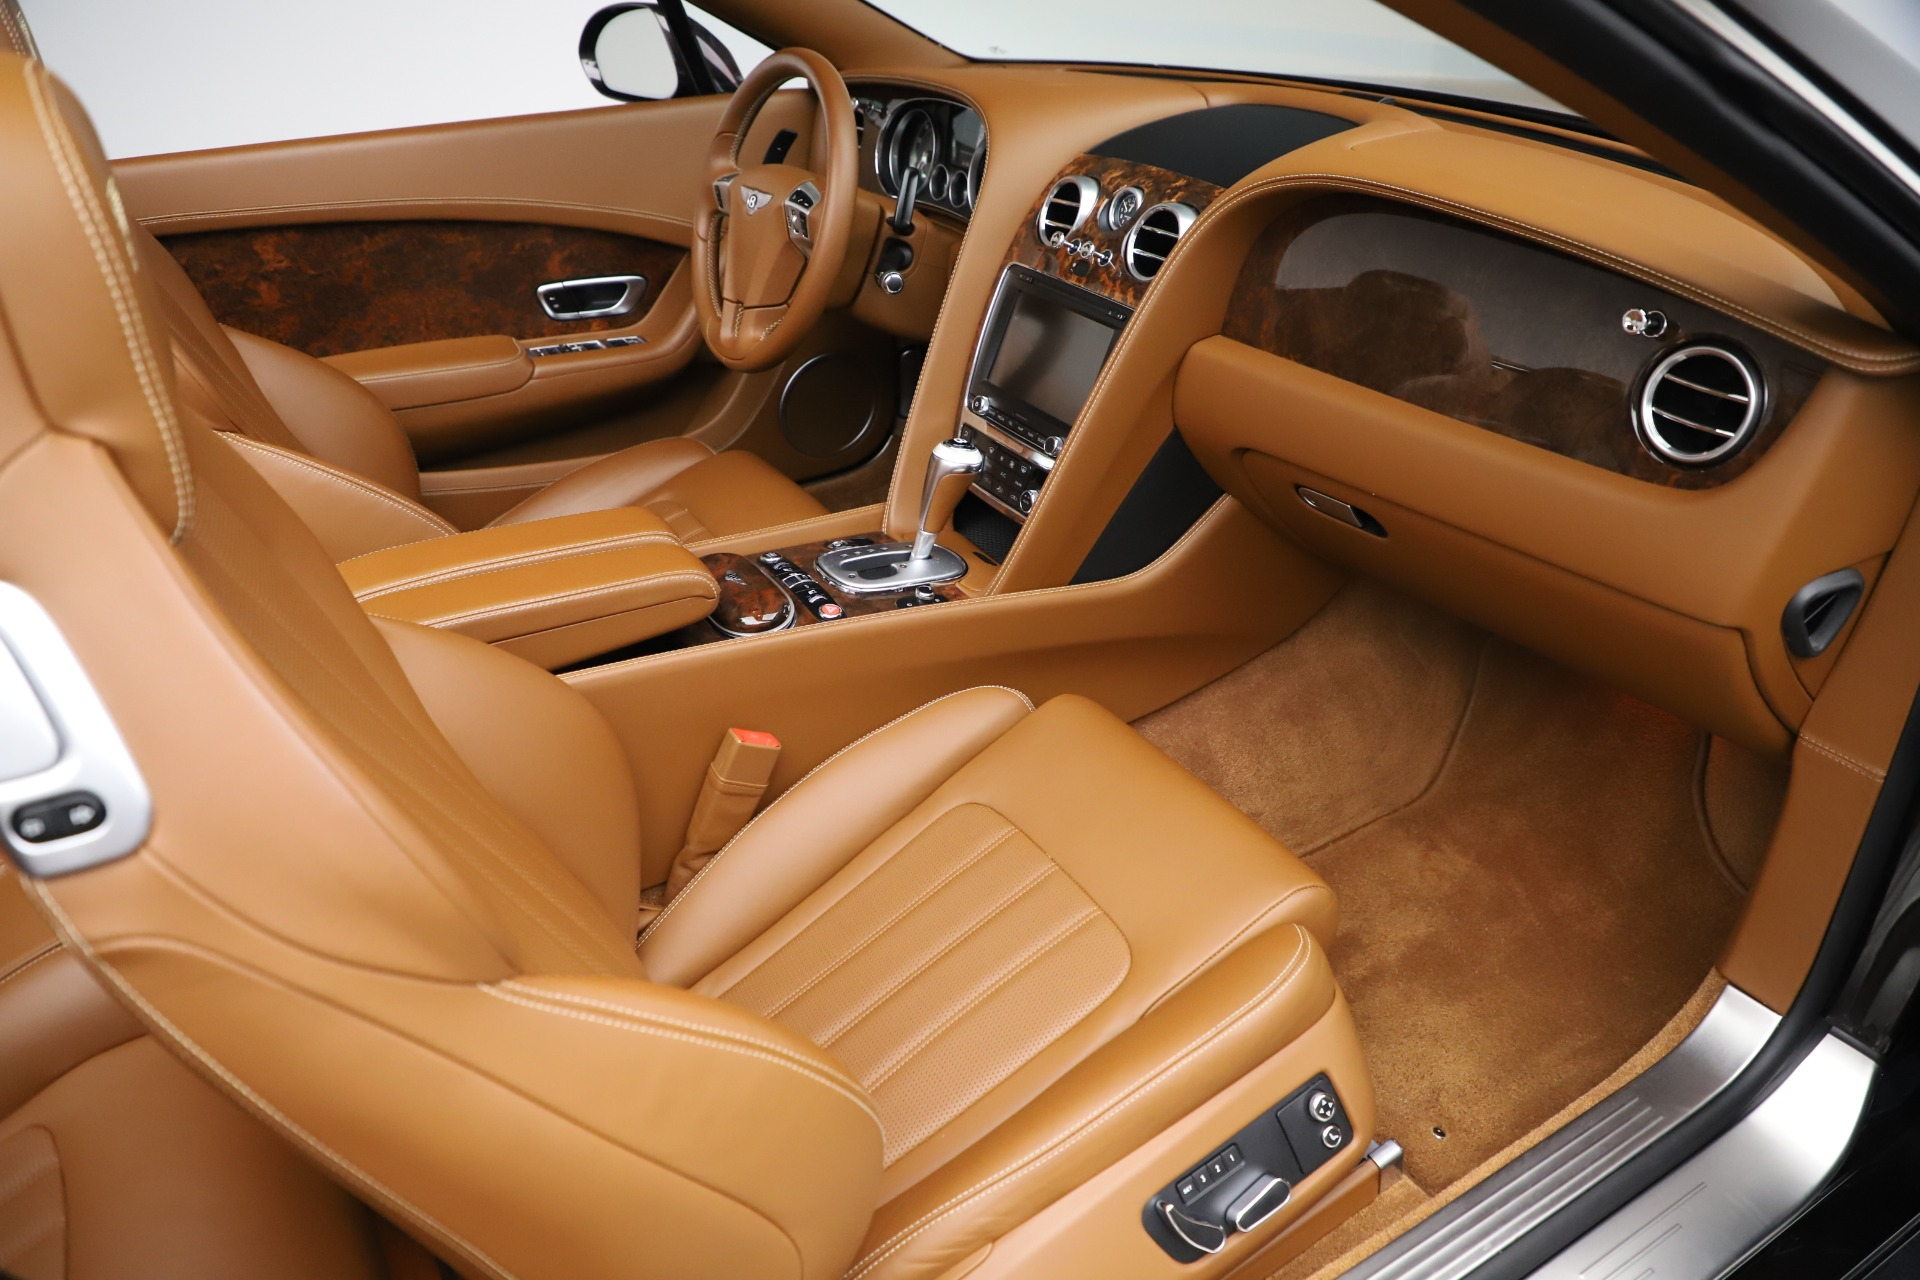 Used 2013 Bentley Continental GT W12 For Sale In Westport, CT 3505_p31